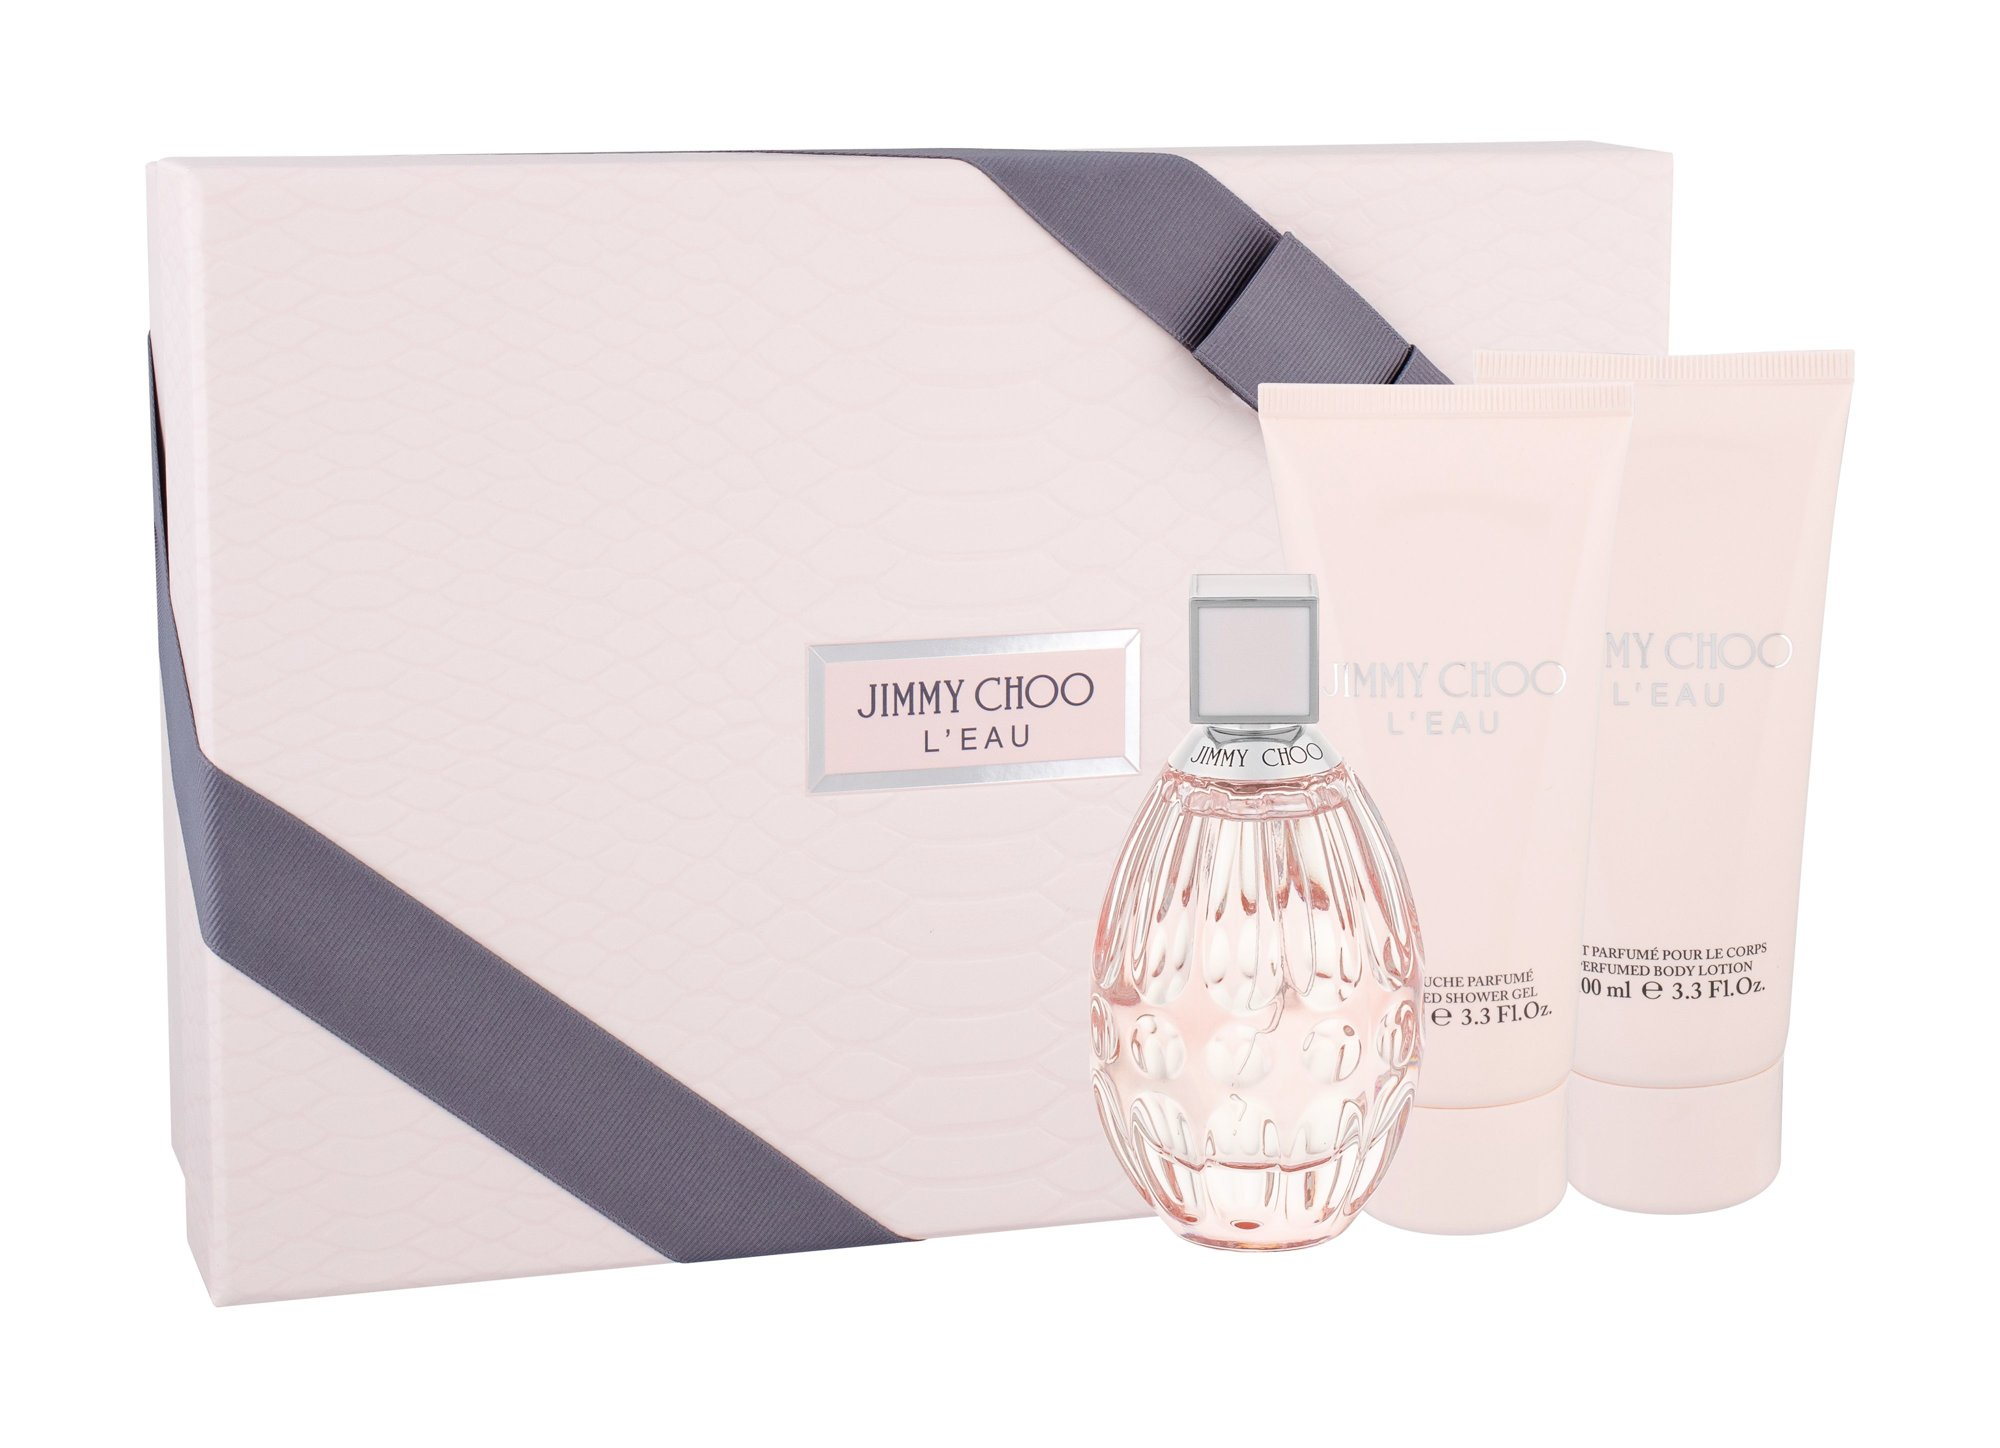 Jimmy Choo Jimmy Choo Eau de Toilette 90ml